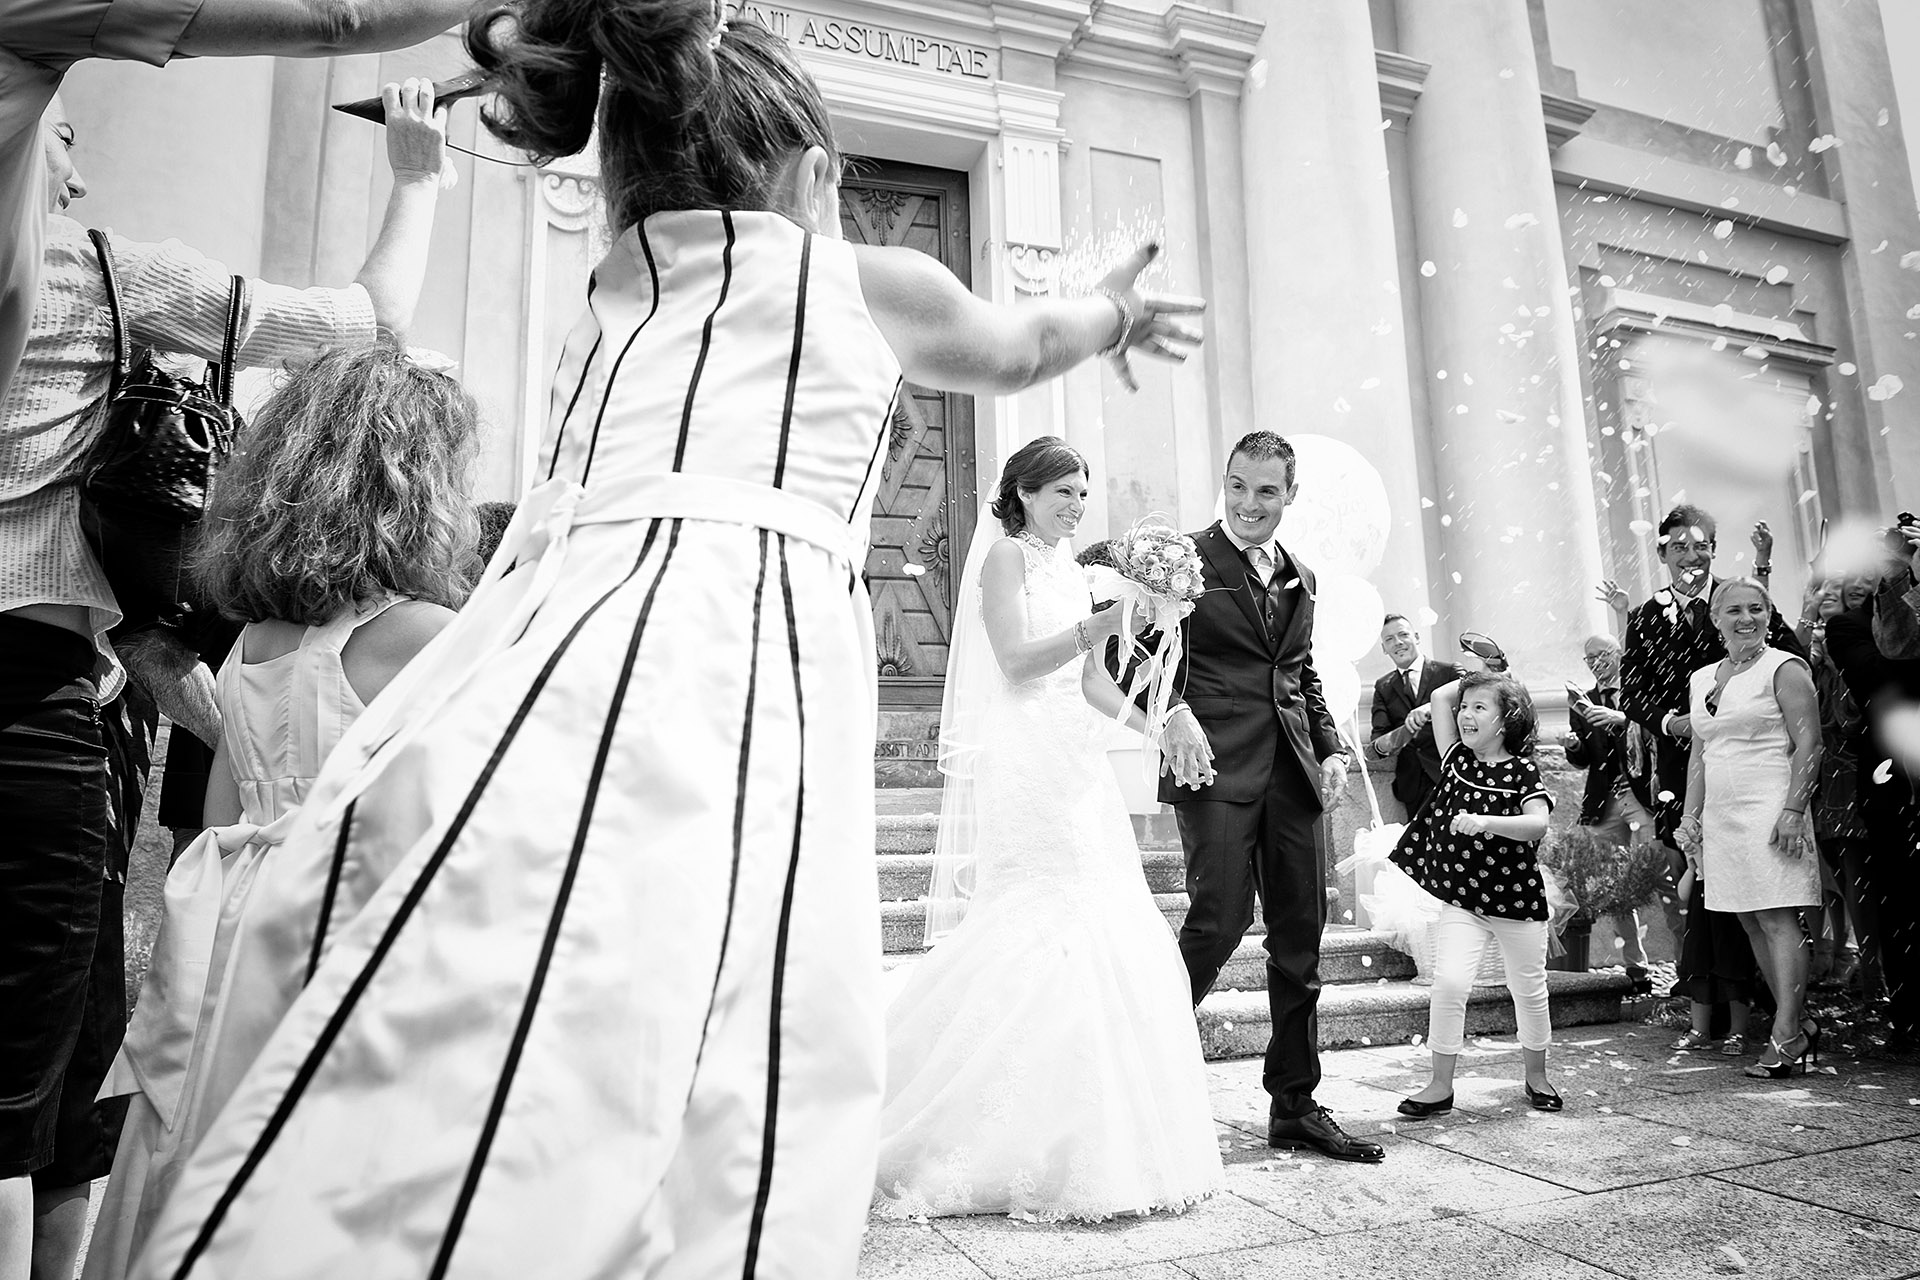 Wedding photographer for Russia, Japan, United States, UK, London and Ireland